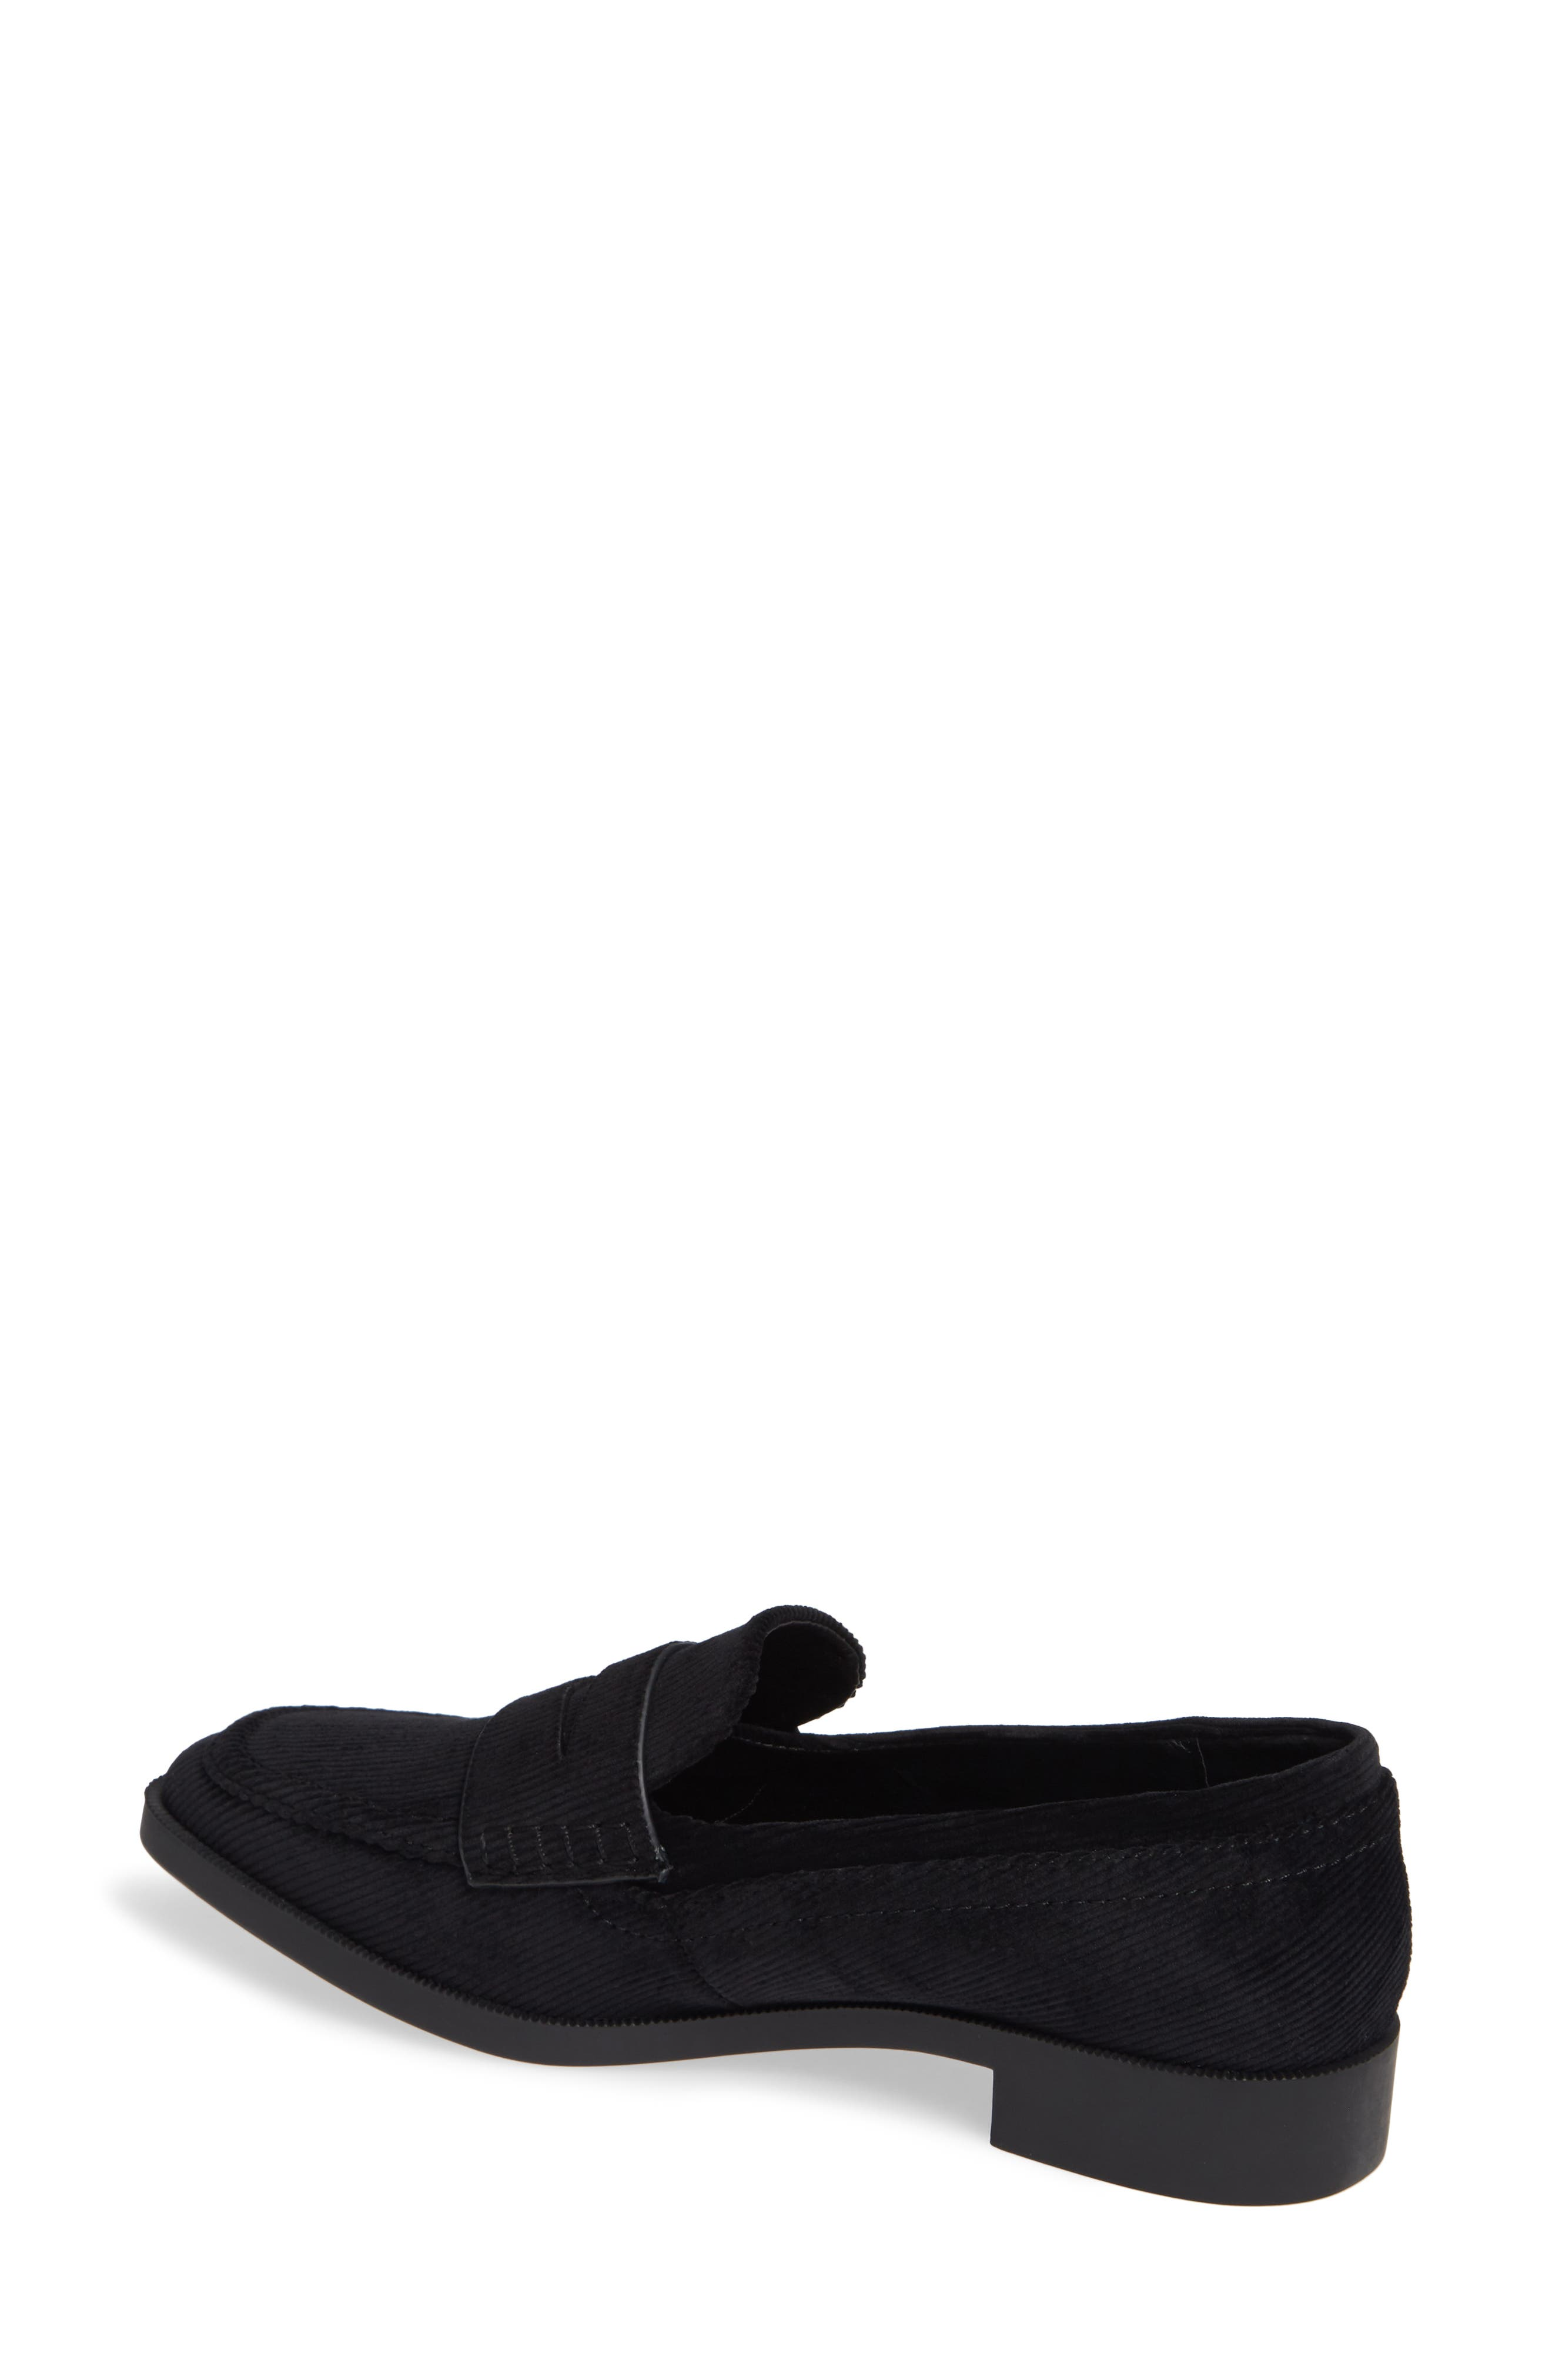 Diplomat Penny Loafer,                             Alternate thumbnail 2, color,                             BLACK FABRIC